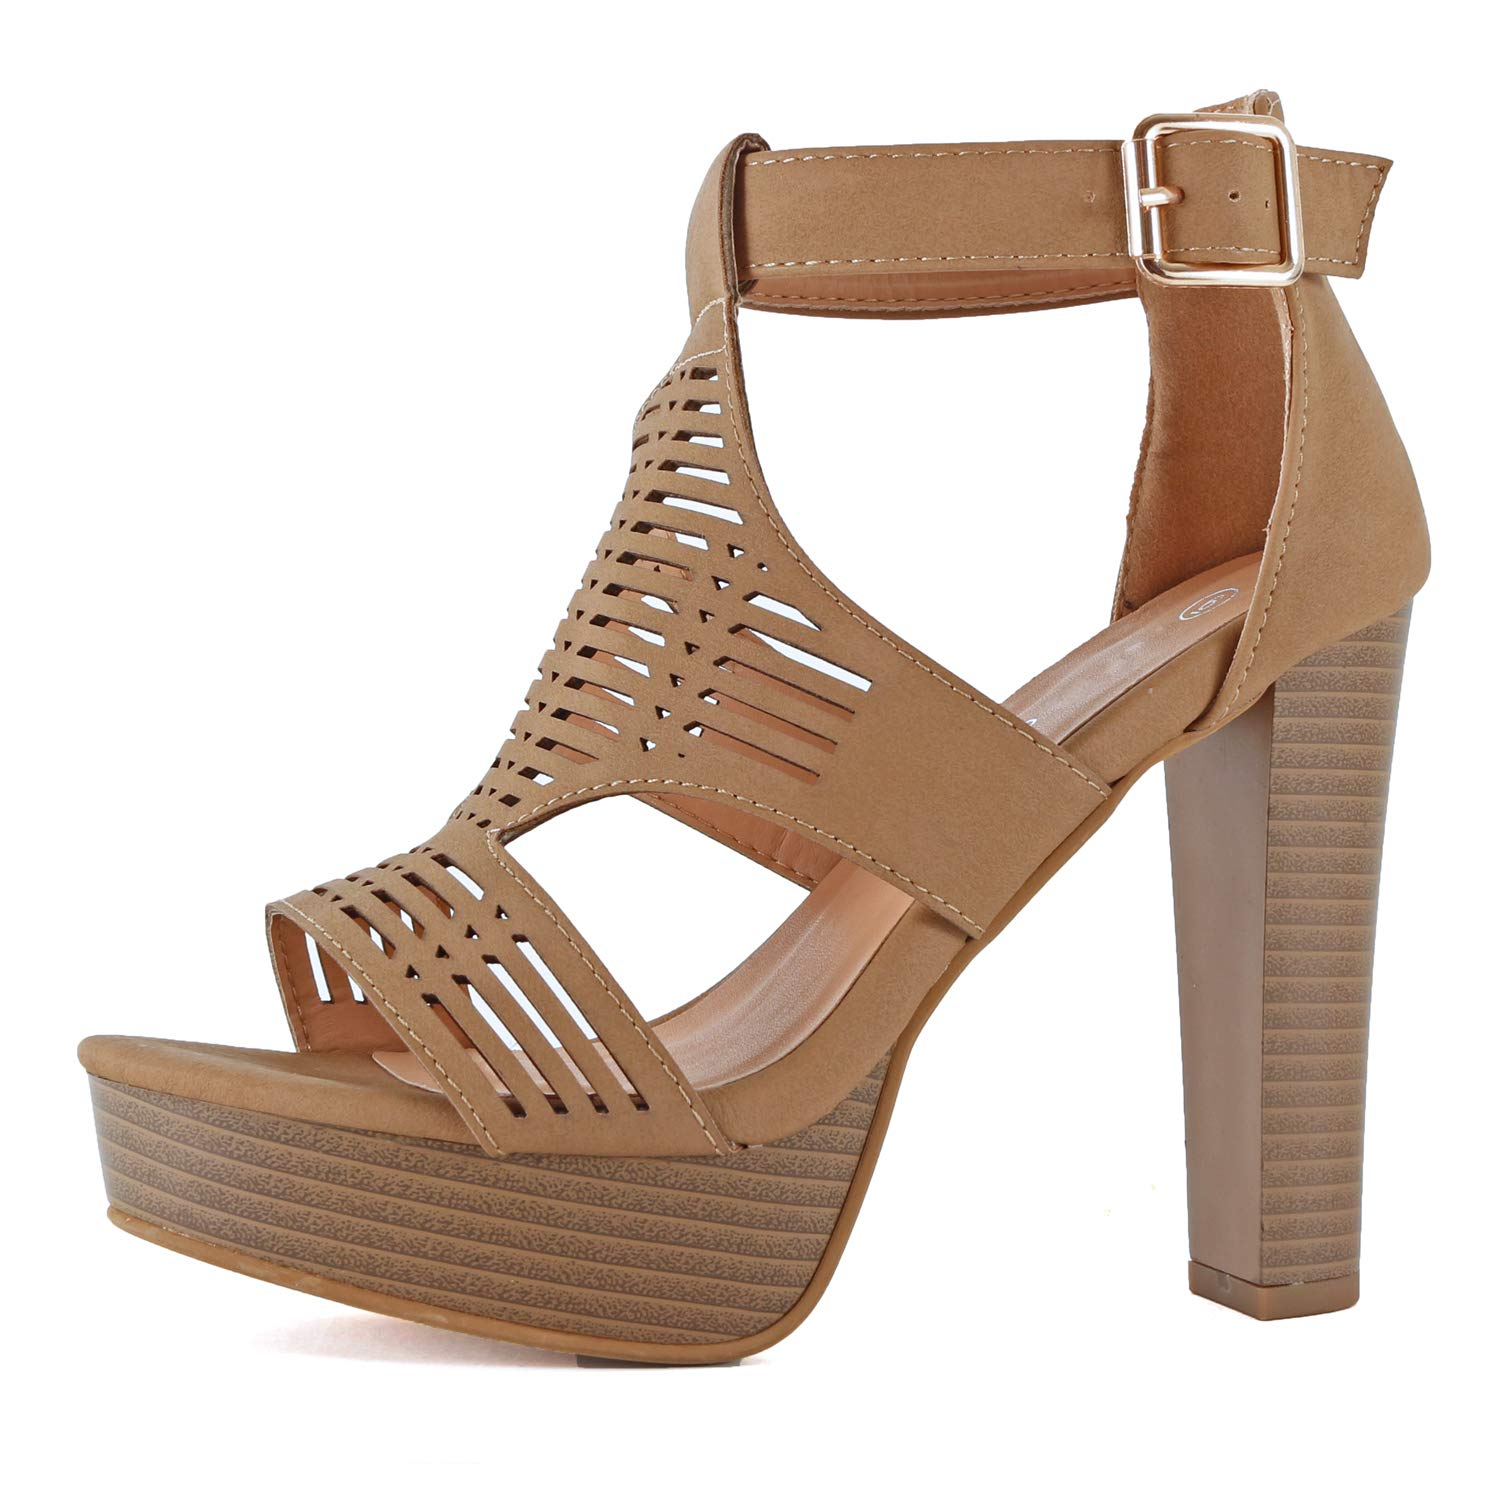 59c6a67f936c67 Guilty Shoes Womens Cutout Gladiator Ankle Strap Platform Block Heel  Stiletto Sandals product image